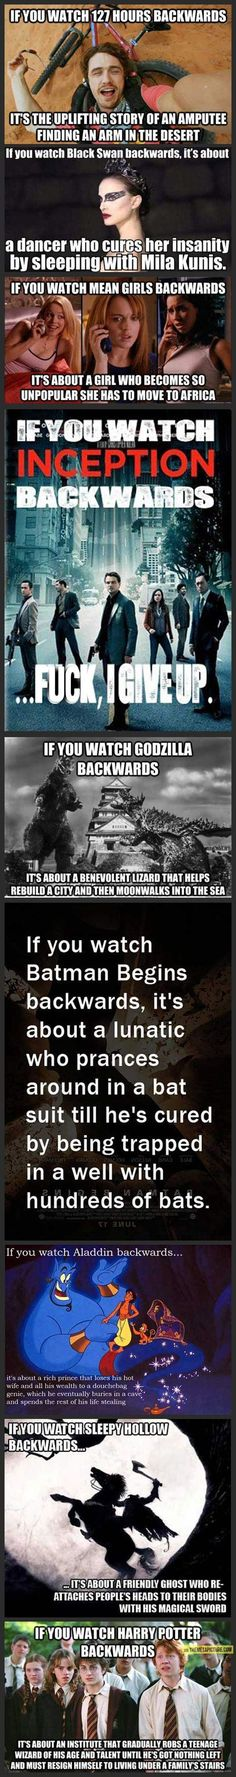 If you watch these movies backwards… Excuse the language…